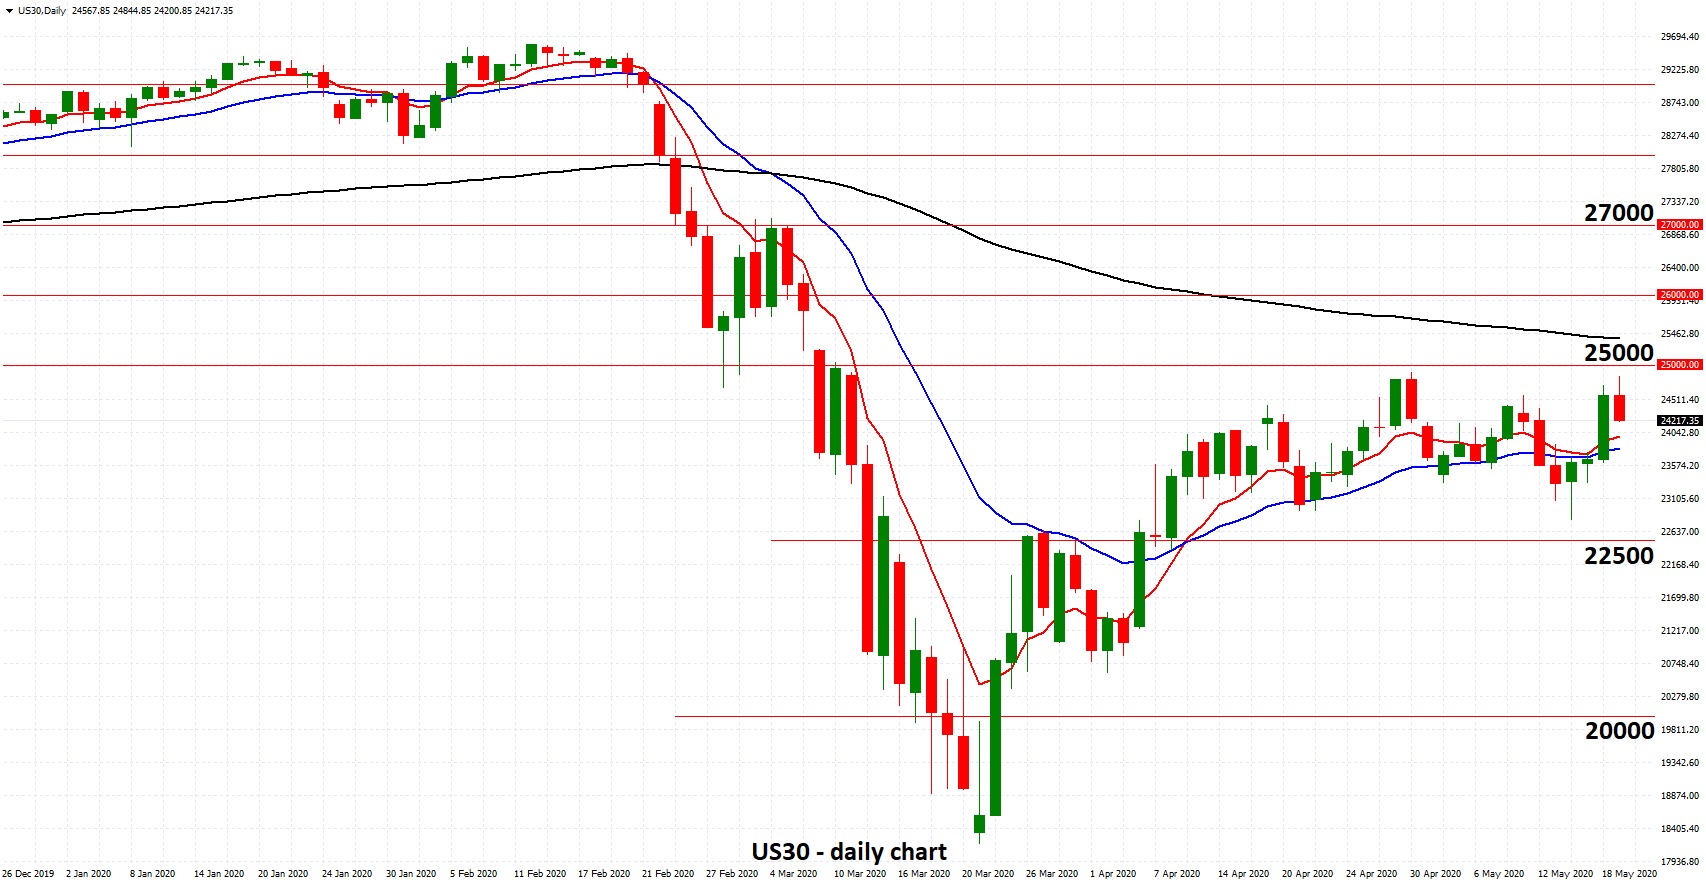 US30 - Resistance at 25000 Stands Tall as Fed's Powell Comments on Recovery